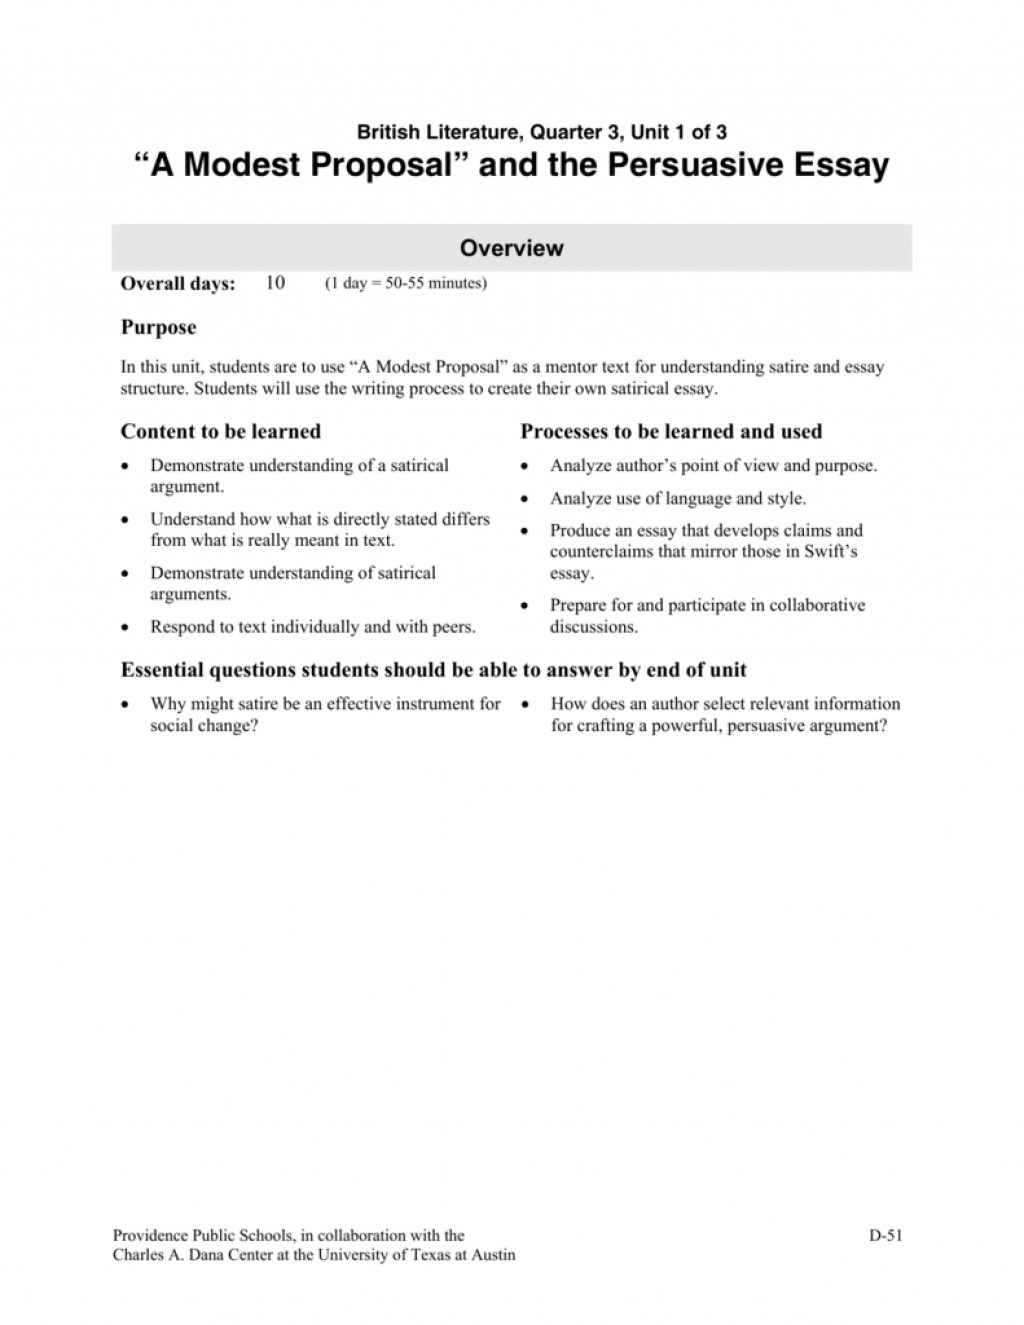 007 Modest Proposal Essay Example 008803036 1 Astounding A Ideas Summary Large